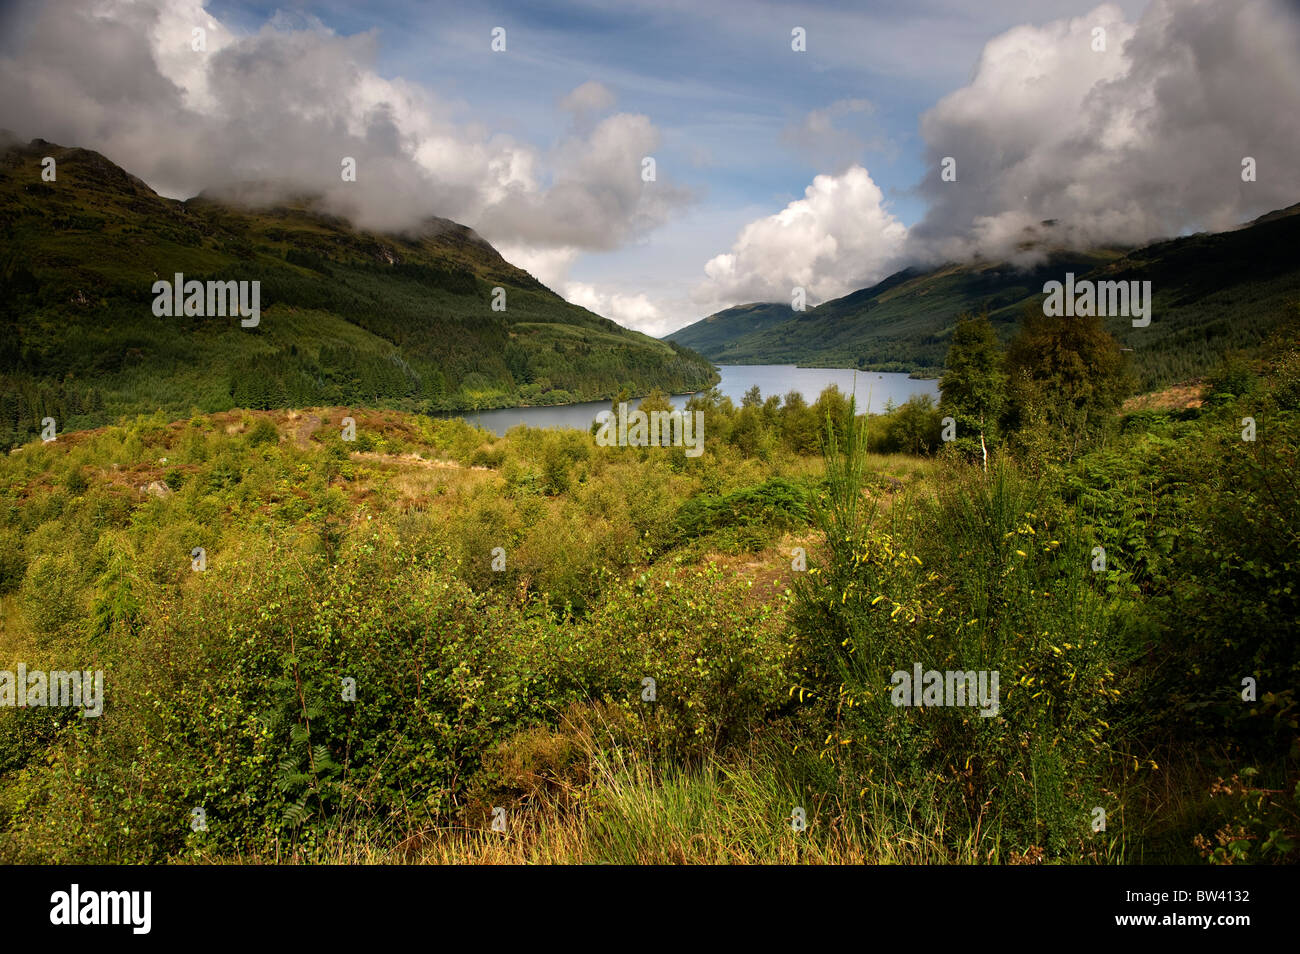 Loch Eck in Argyll. Late summer. - Stock Image